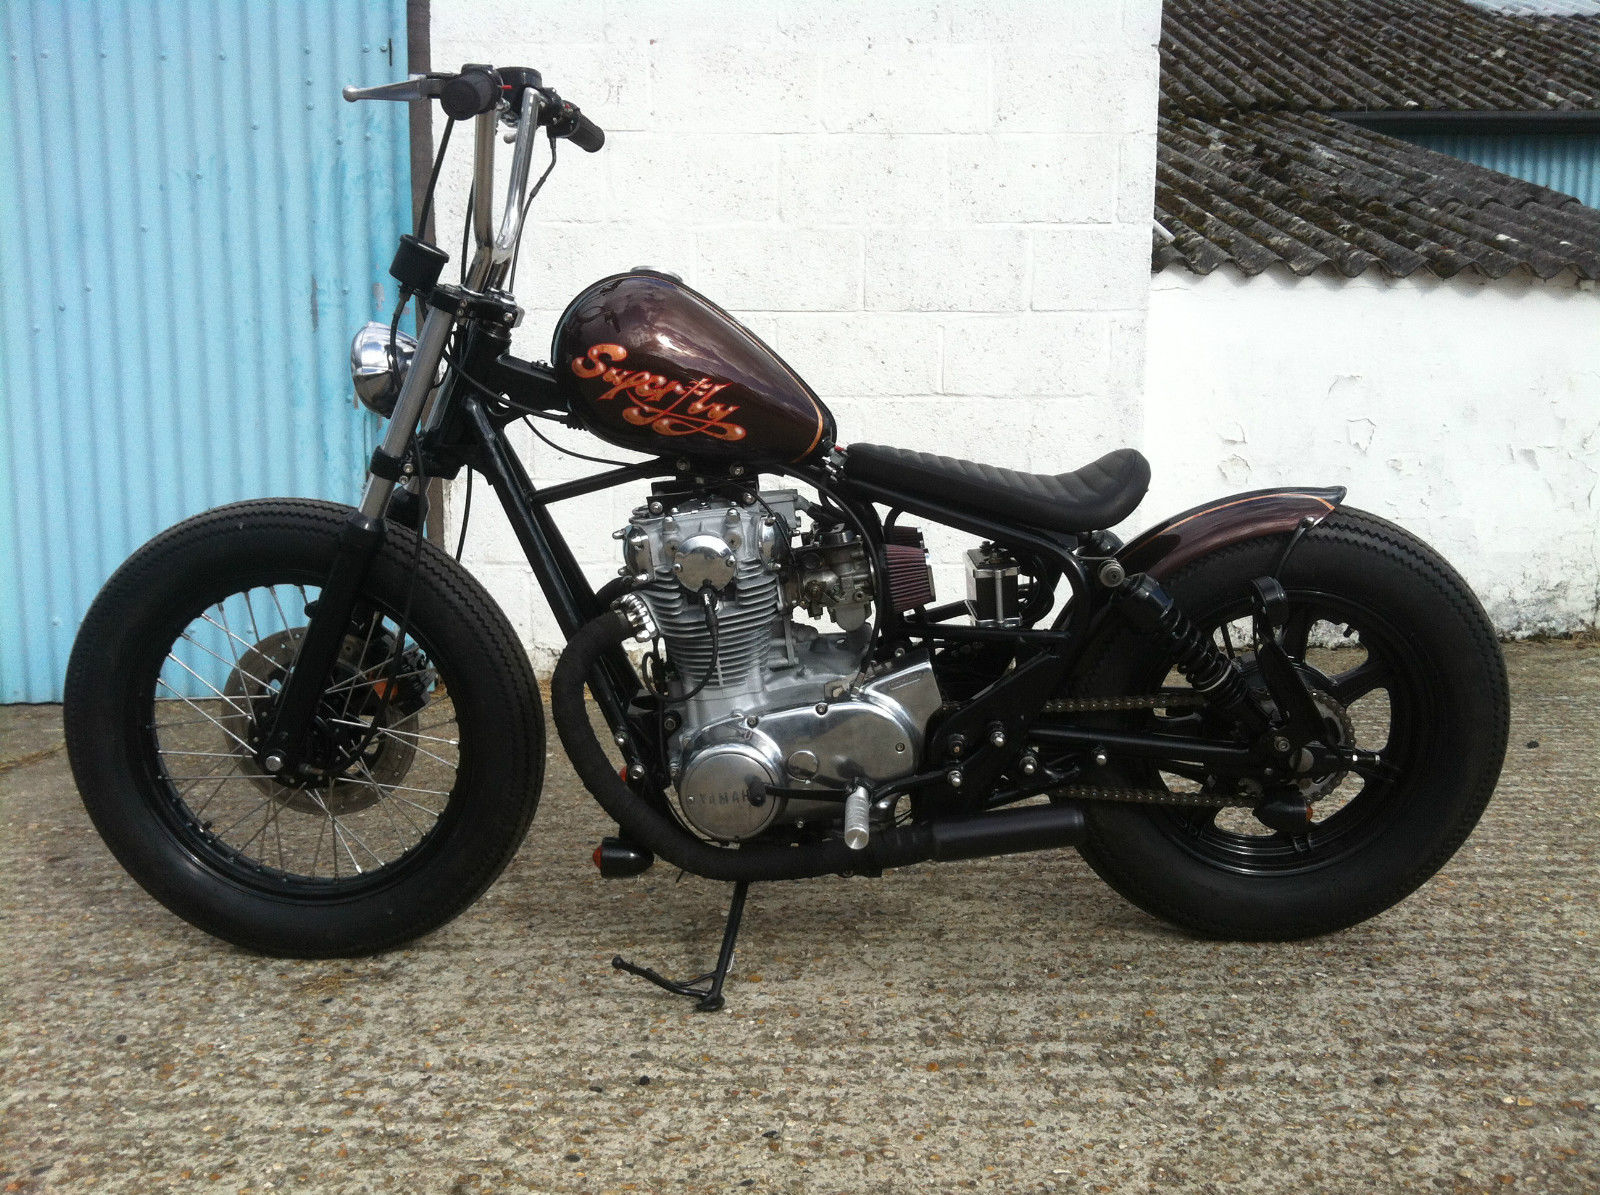 Yamaha Xs650 Bratstyle Bobber New Pro Build By Jones Customs Not Harley Hardtail